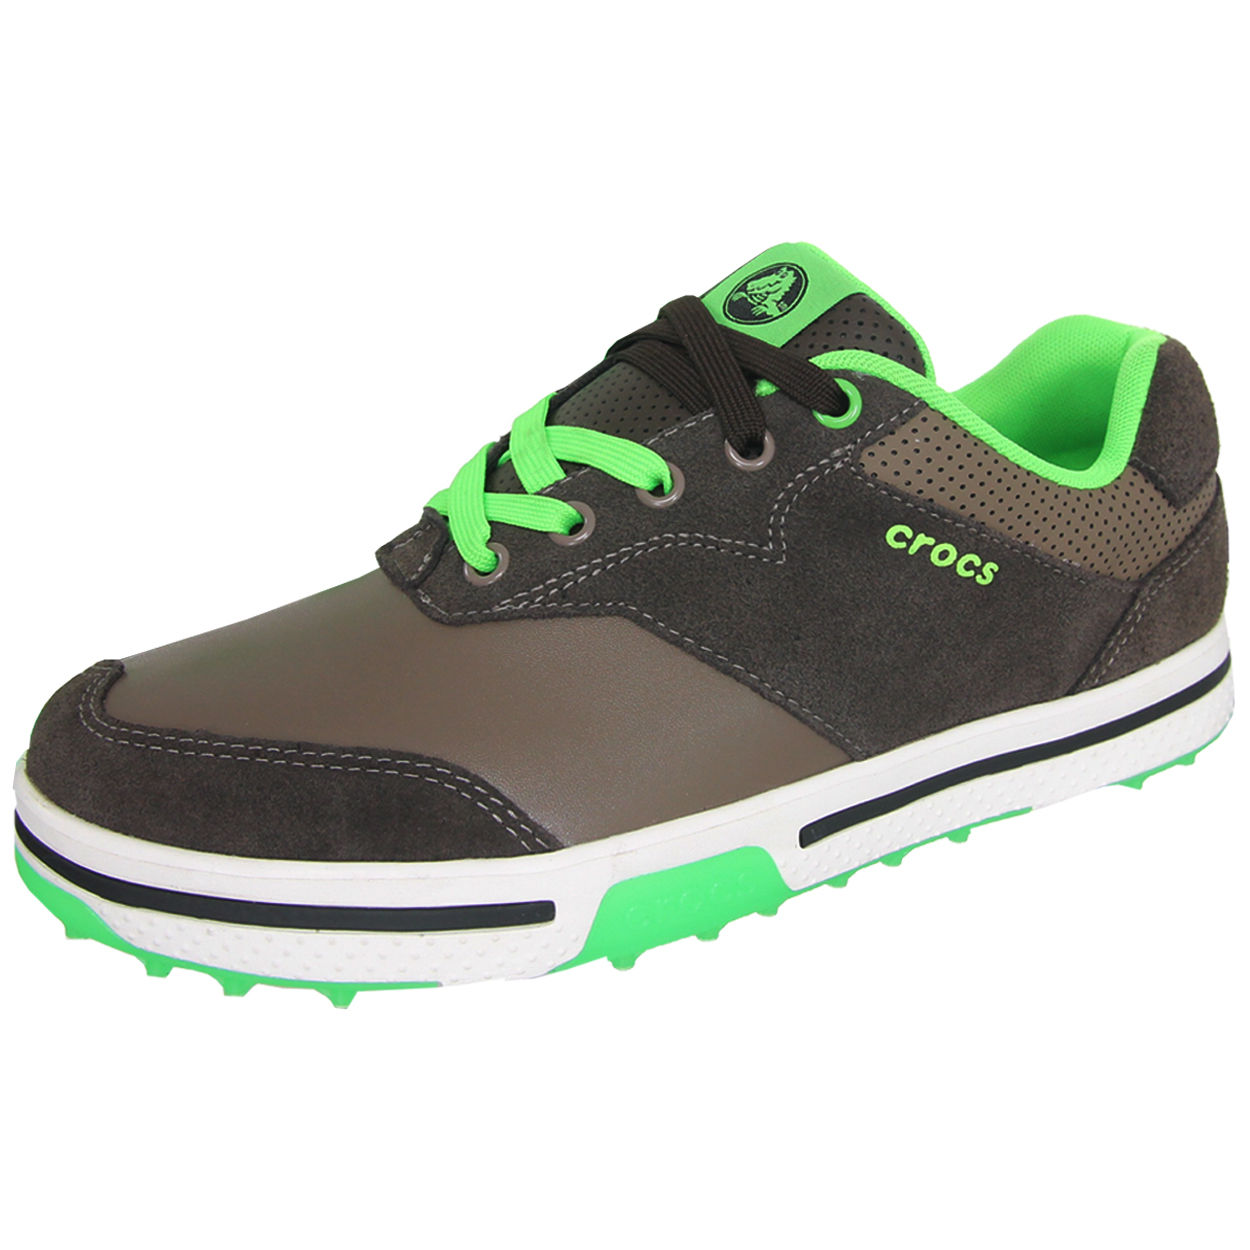 Crocs Golf Shoes Size